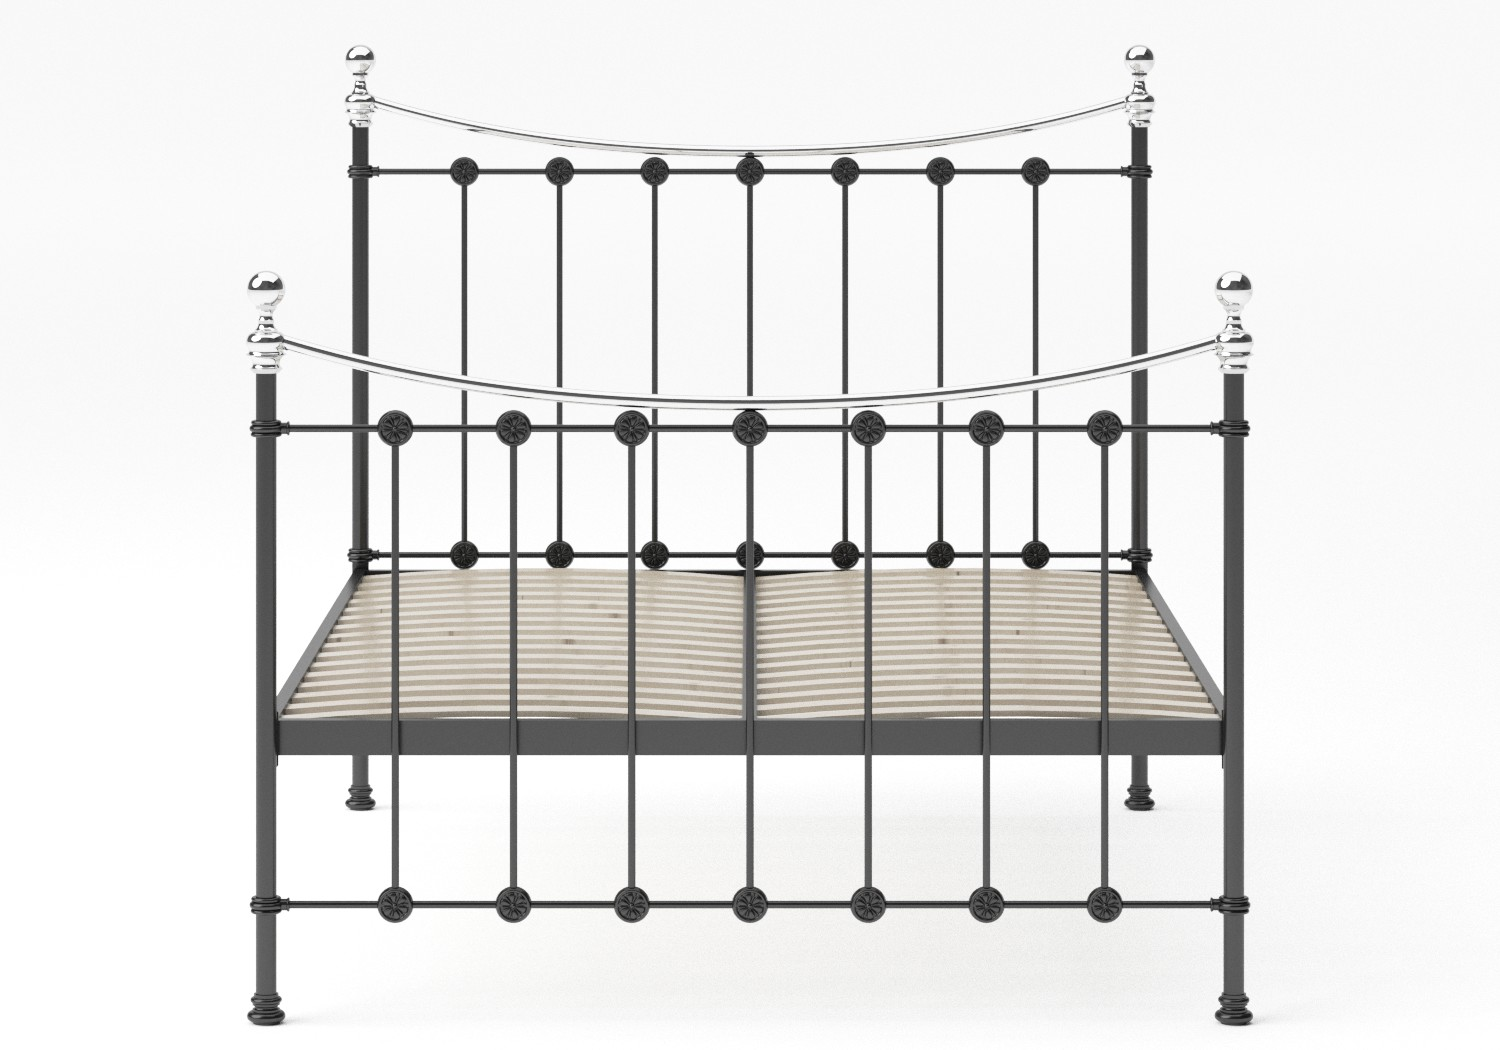 Carrick Iron/Metal Bed in Satin Black with chrome details shown with slatted frame